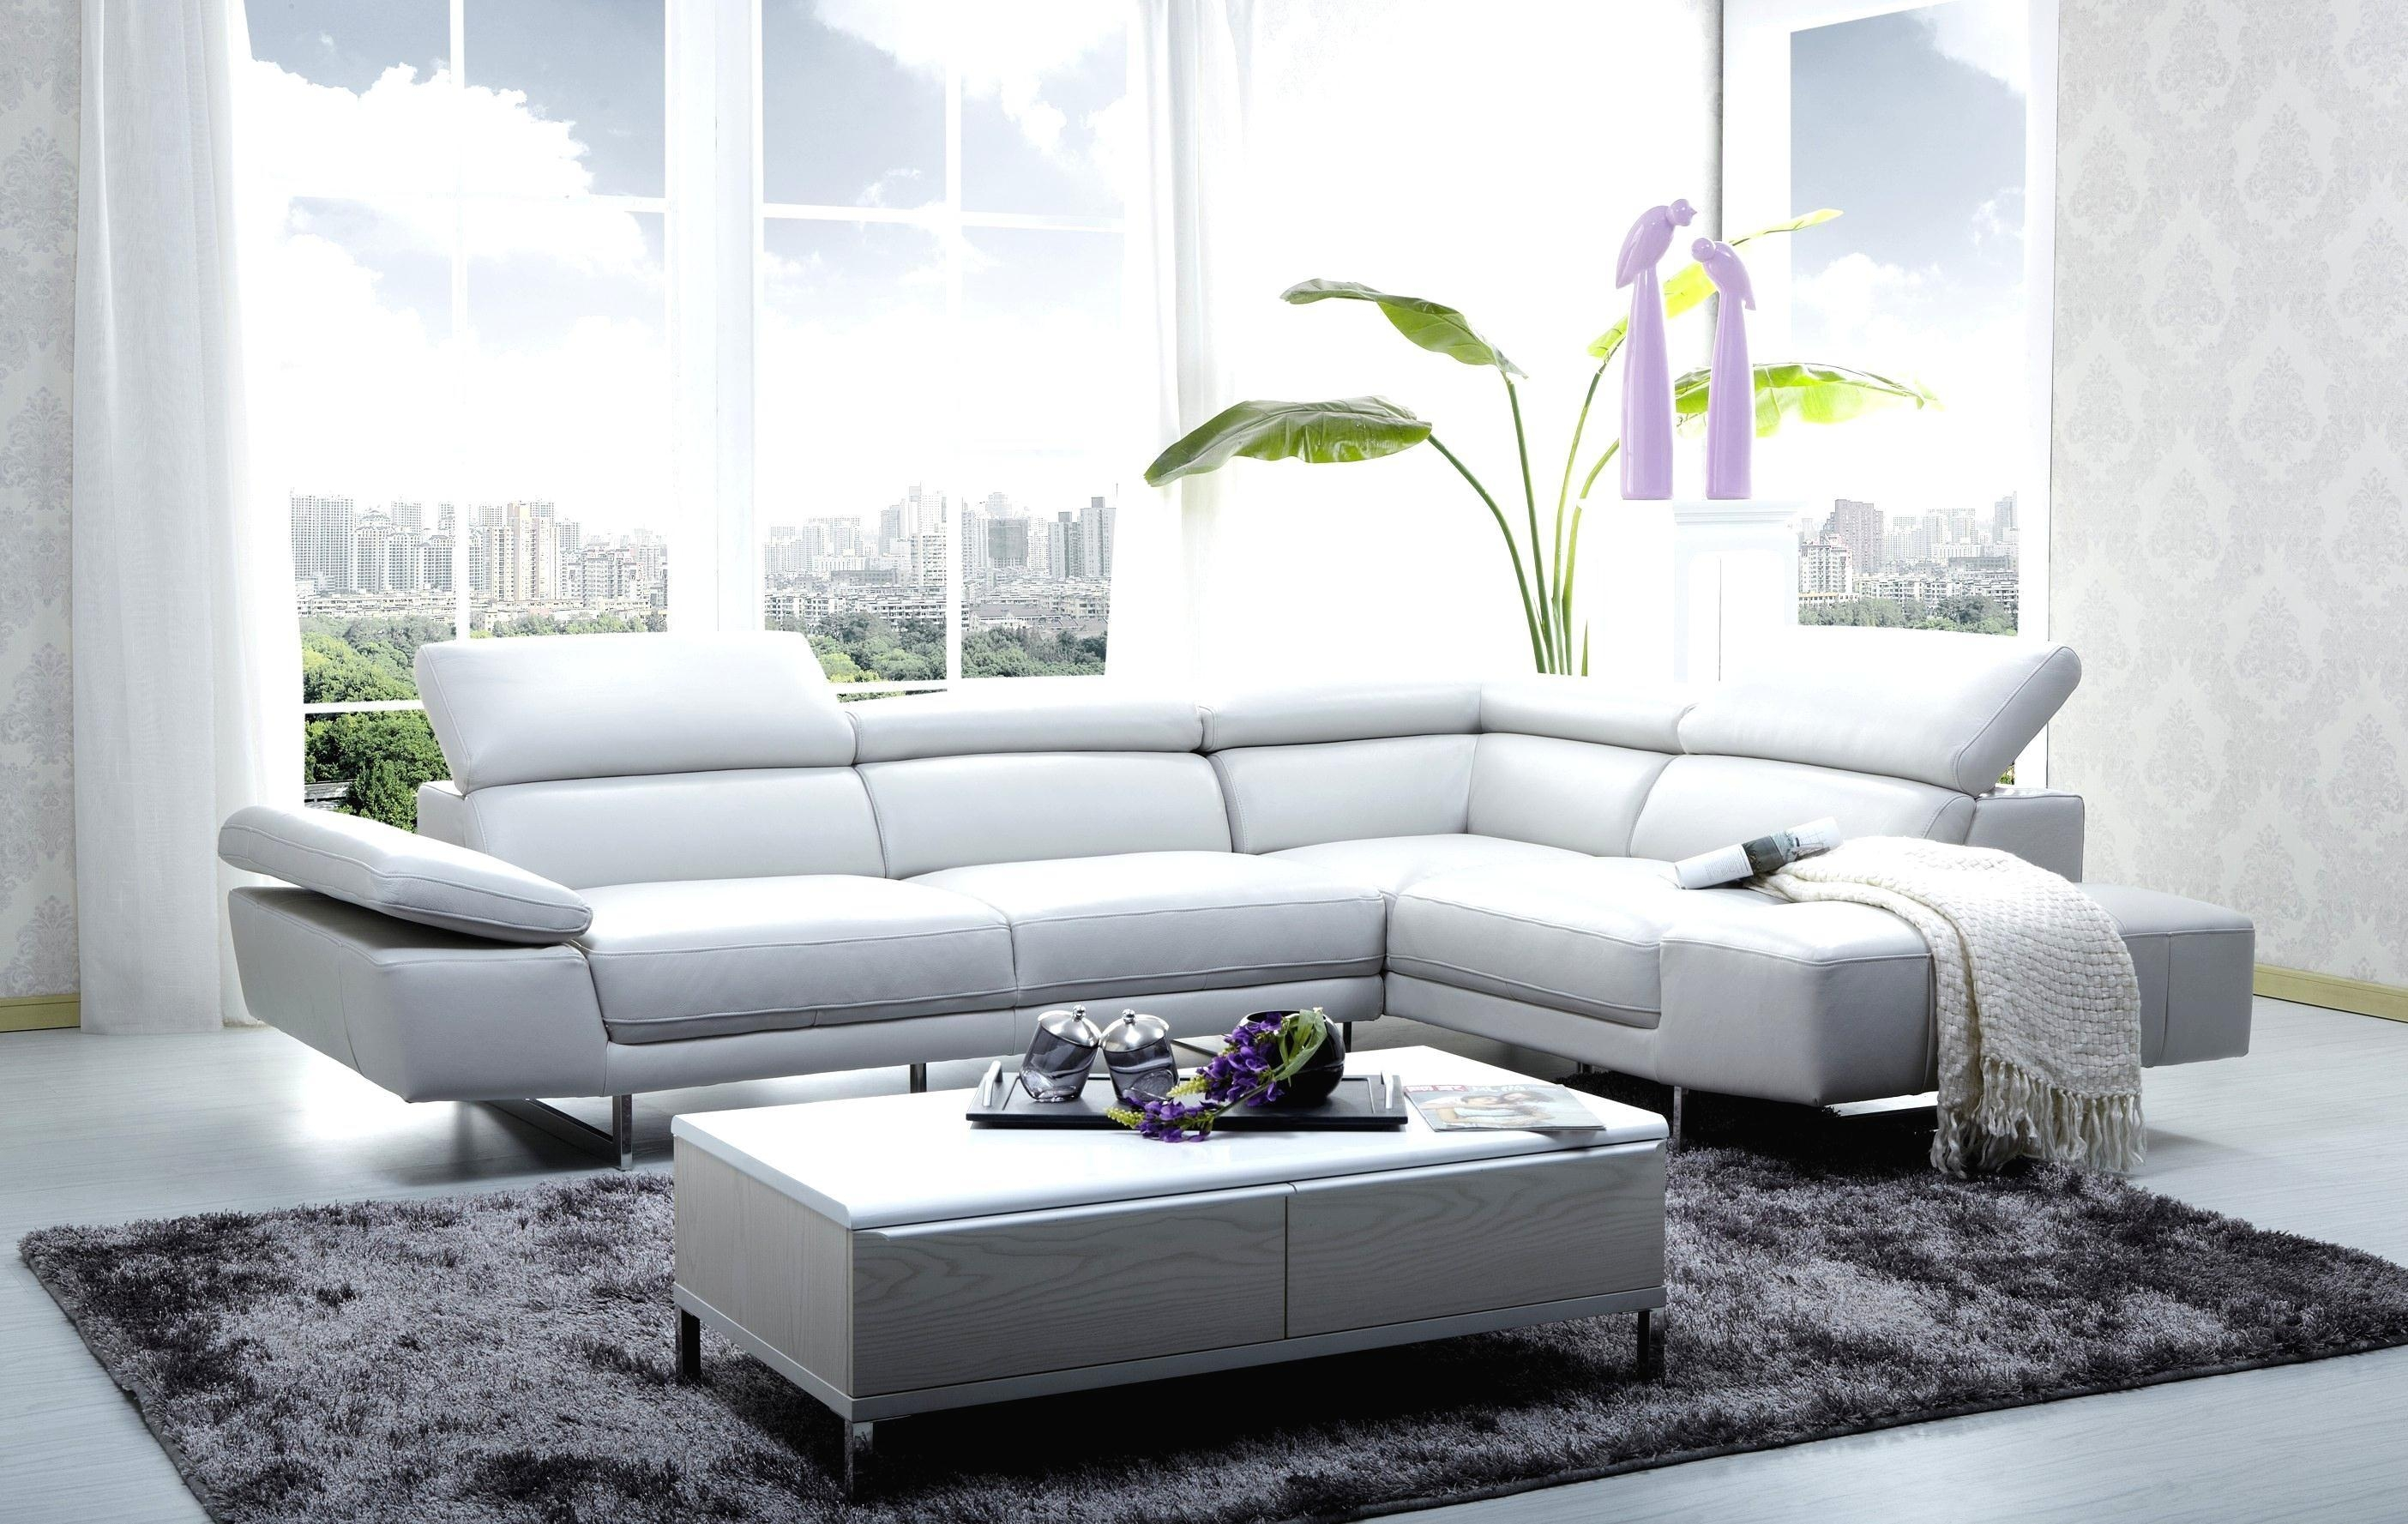 High End Sectional Sofas – Tourdecarroll With Regard To High End Leather Sectionals (View 13 of 20)